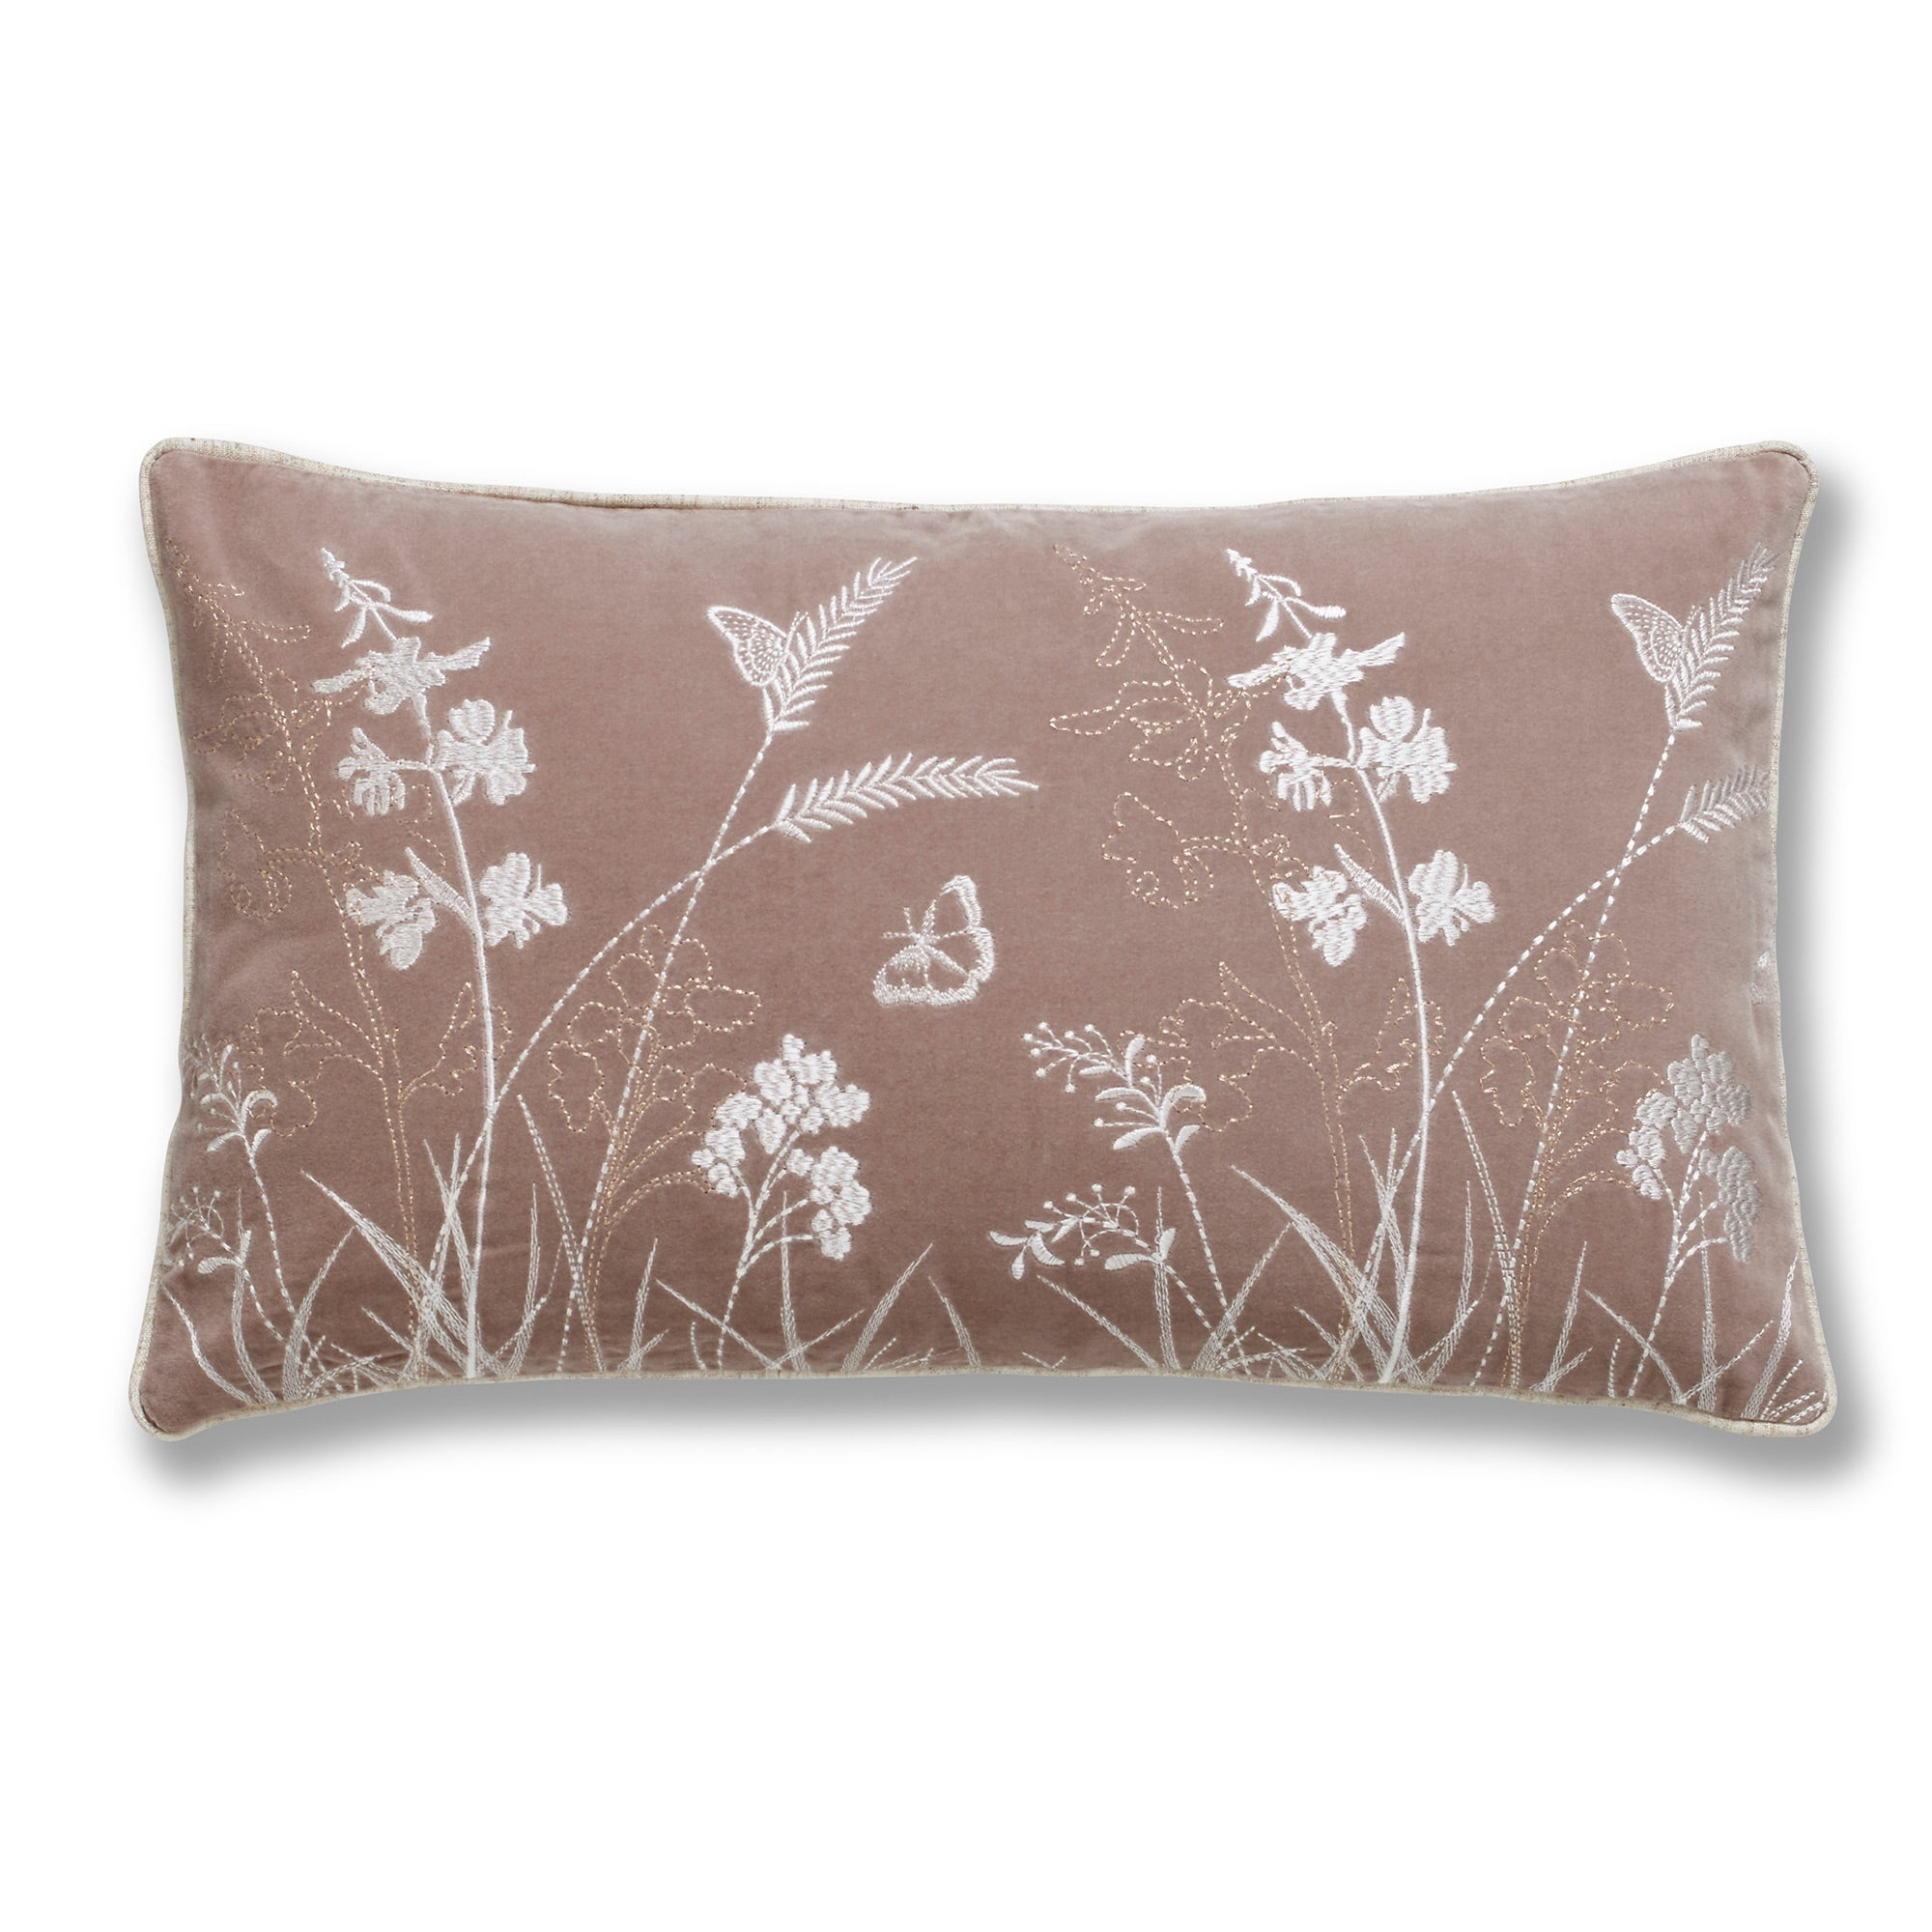 Photo of Natural rustic romance cushion natural brown